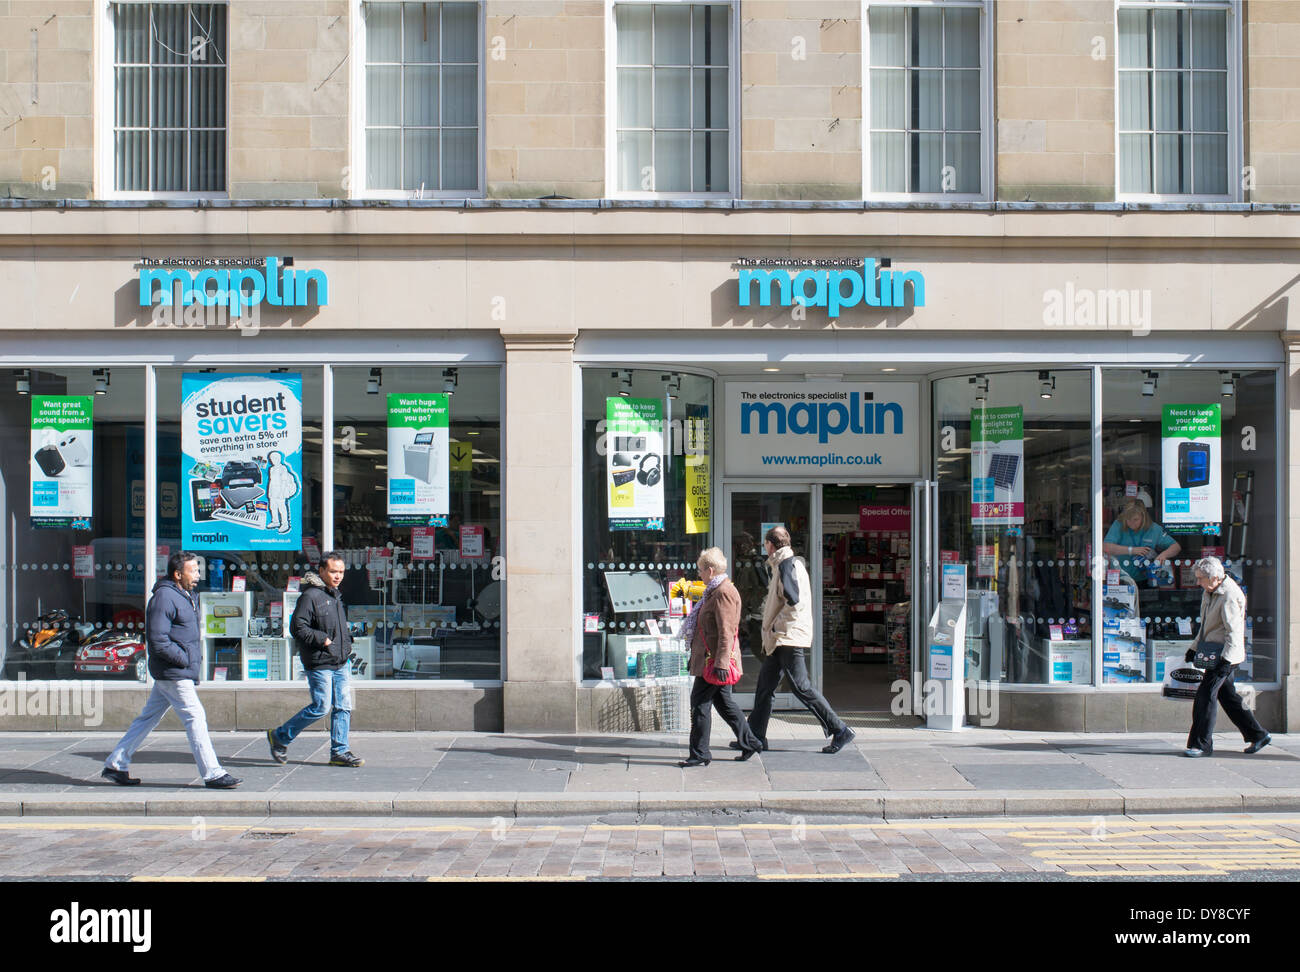 People walking past Maplin shop in Newcastle north east England UK - Stock Image